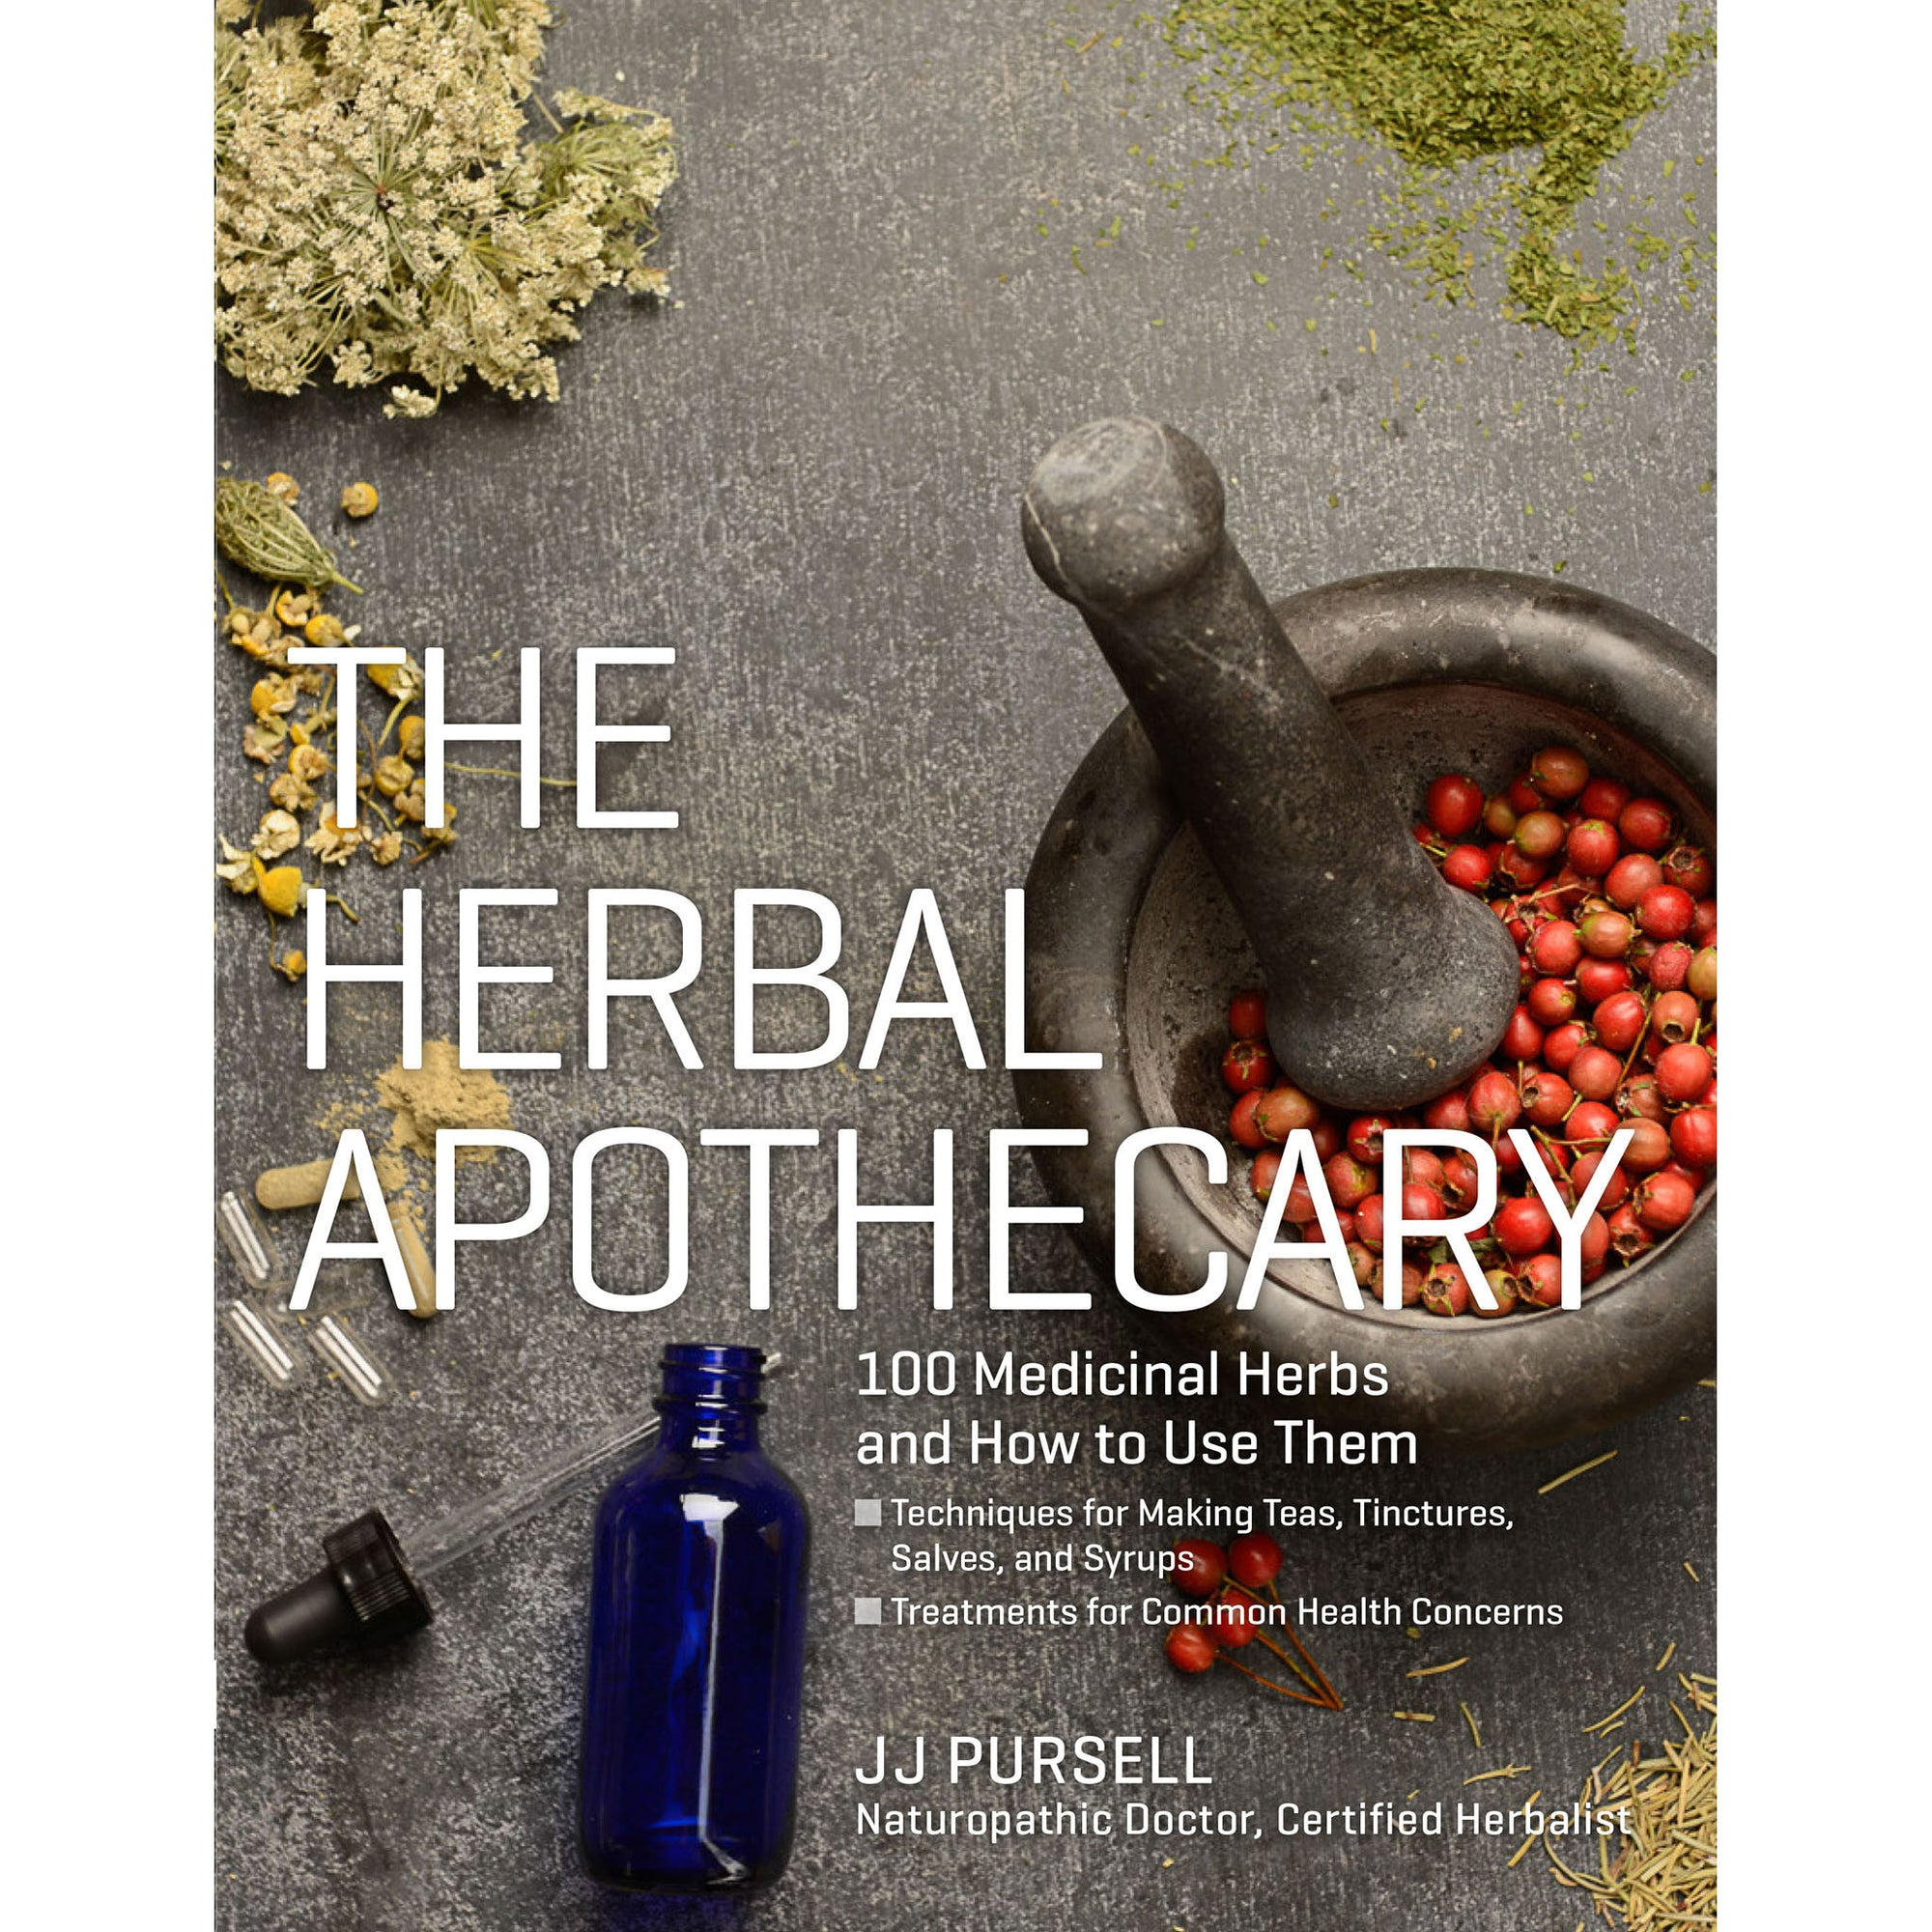 The Herbal Apothecary: 100 Medicinal Herbs and How to Use Them | Getty Store